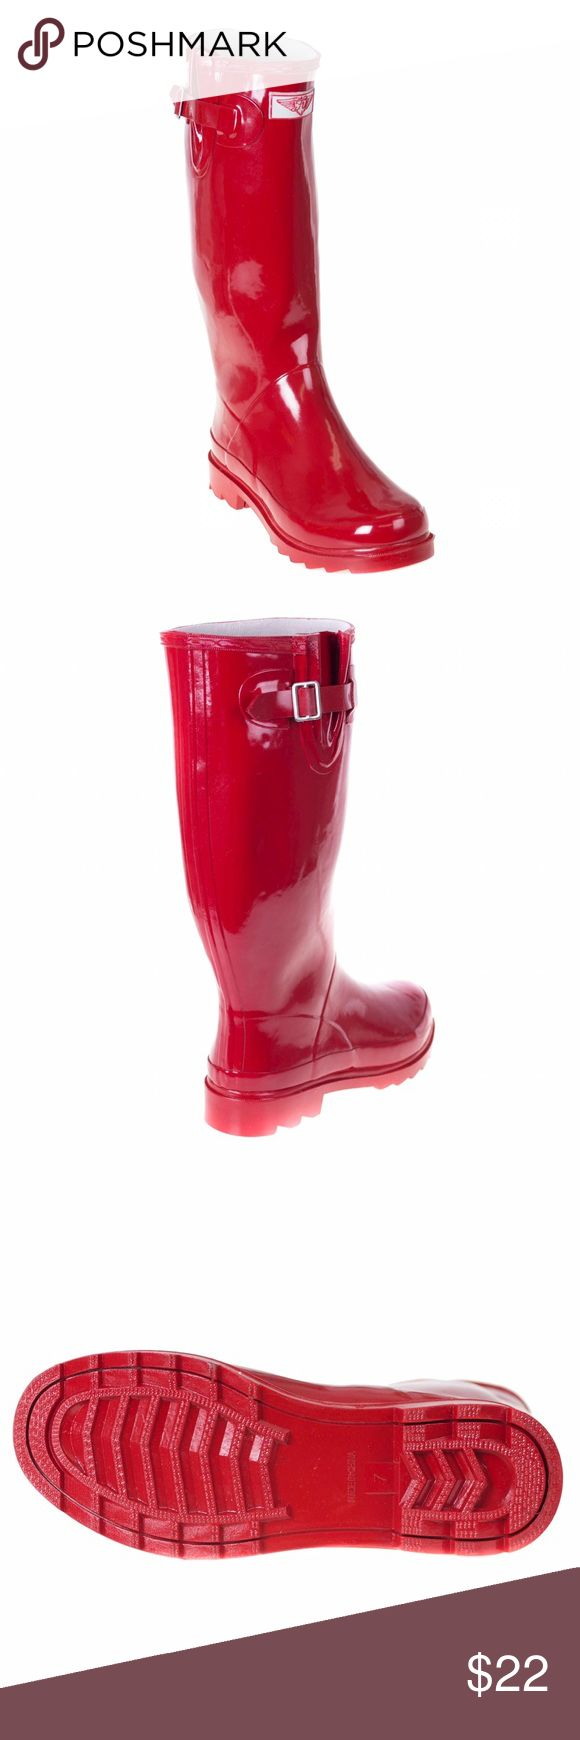 "Women's Red Rubber Rain Boots 14 inches RB3106 Women's Red Rubber Rain Boots 14 inches approximately 15"" circumference RB3106 forever young Shoes Winter & Rain Boots"